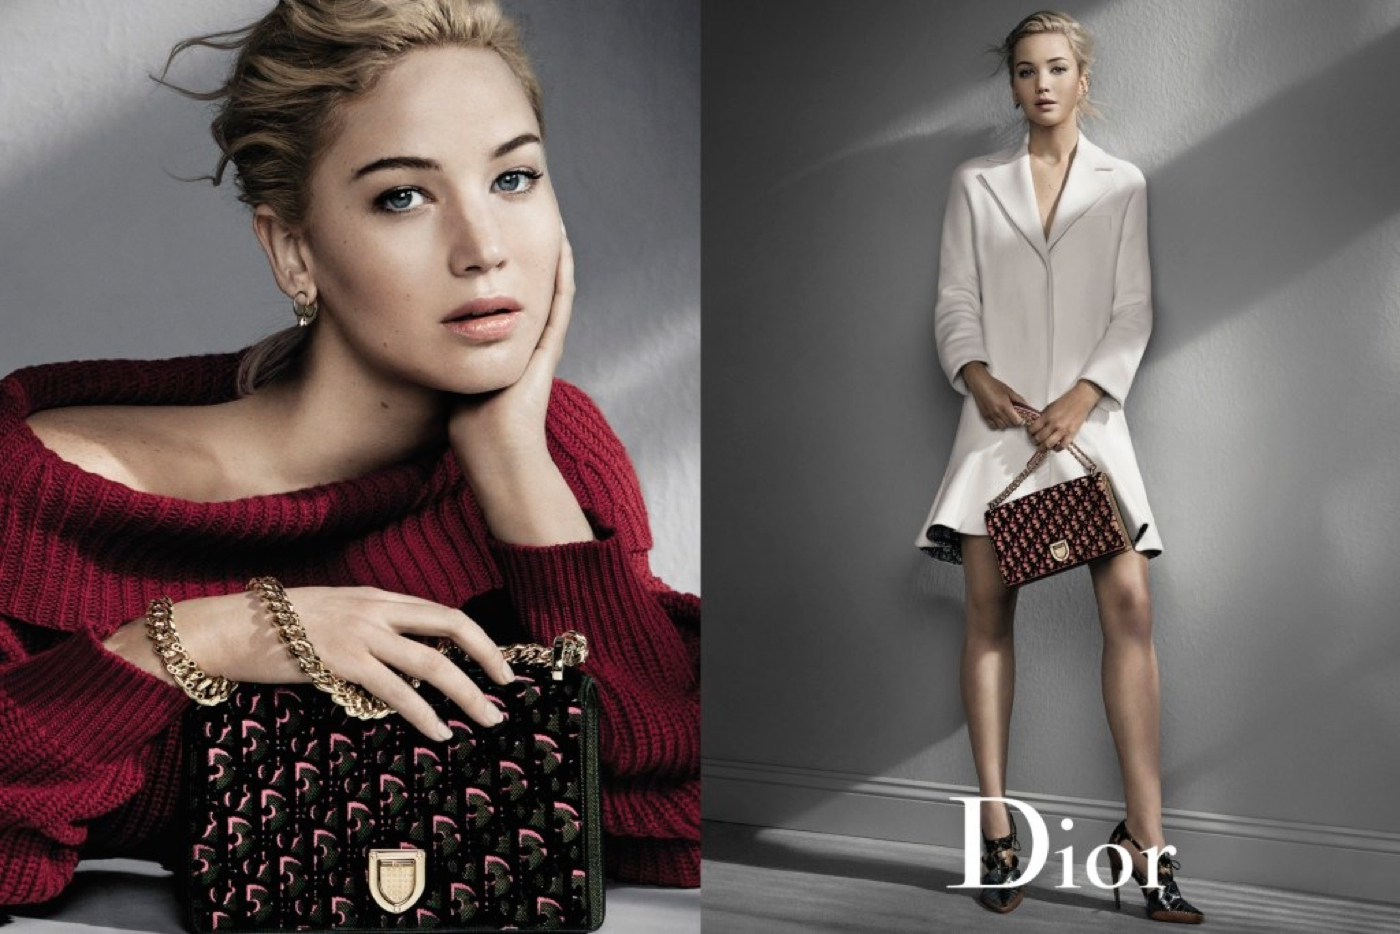 Jennifer Lawrence stars in the New Dior Fall Winter 2016 Handbag Ad Campaign 1